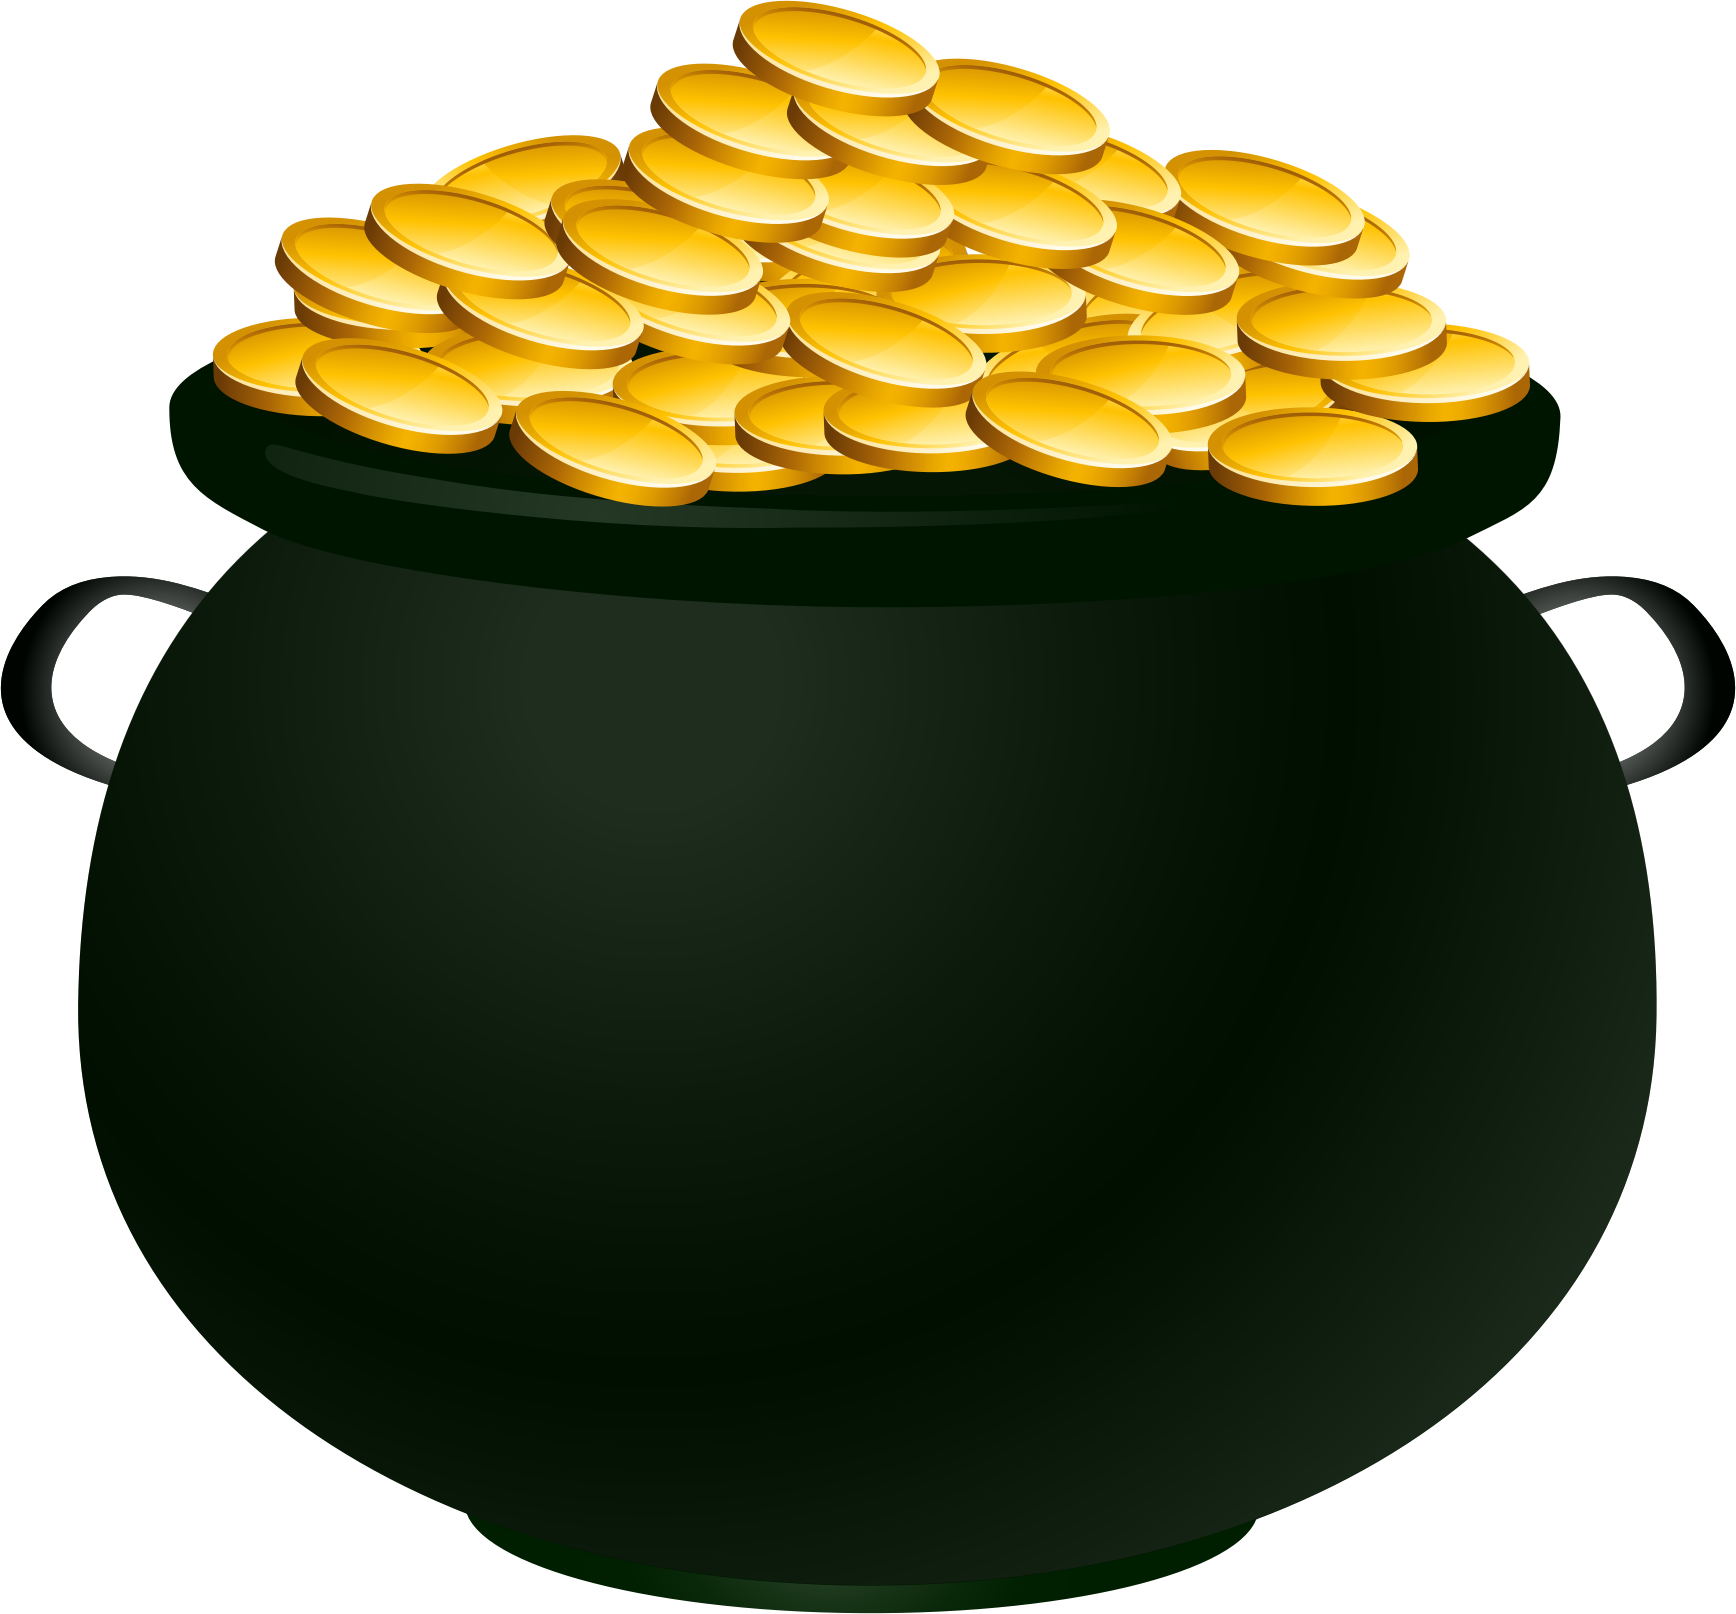 Pot of gold png. Suddenly picture a image